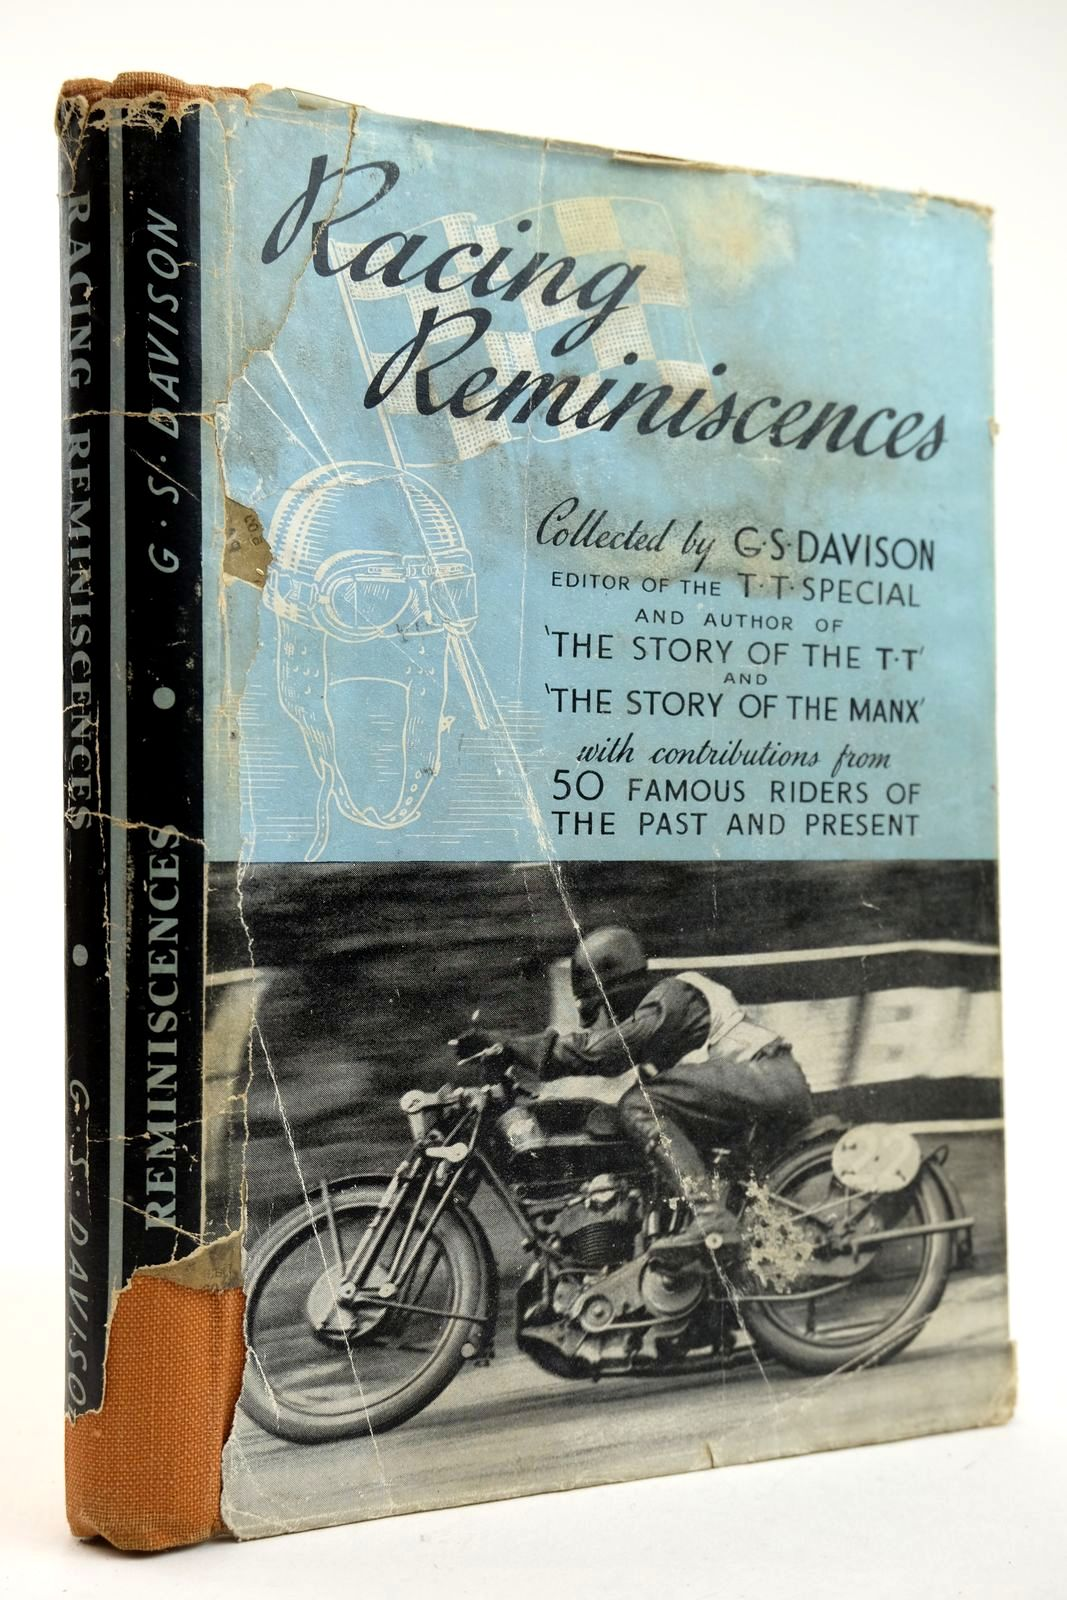 Photo of RACING REMINISCENCES written by Davison, G.S. published by The T.T. Special (STOCK CODE: 2132283)  for sale by Stella & Rose's Books